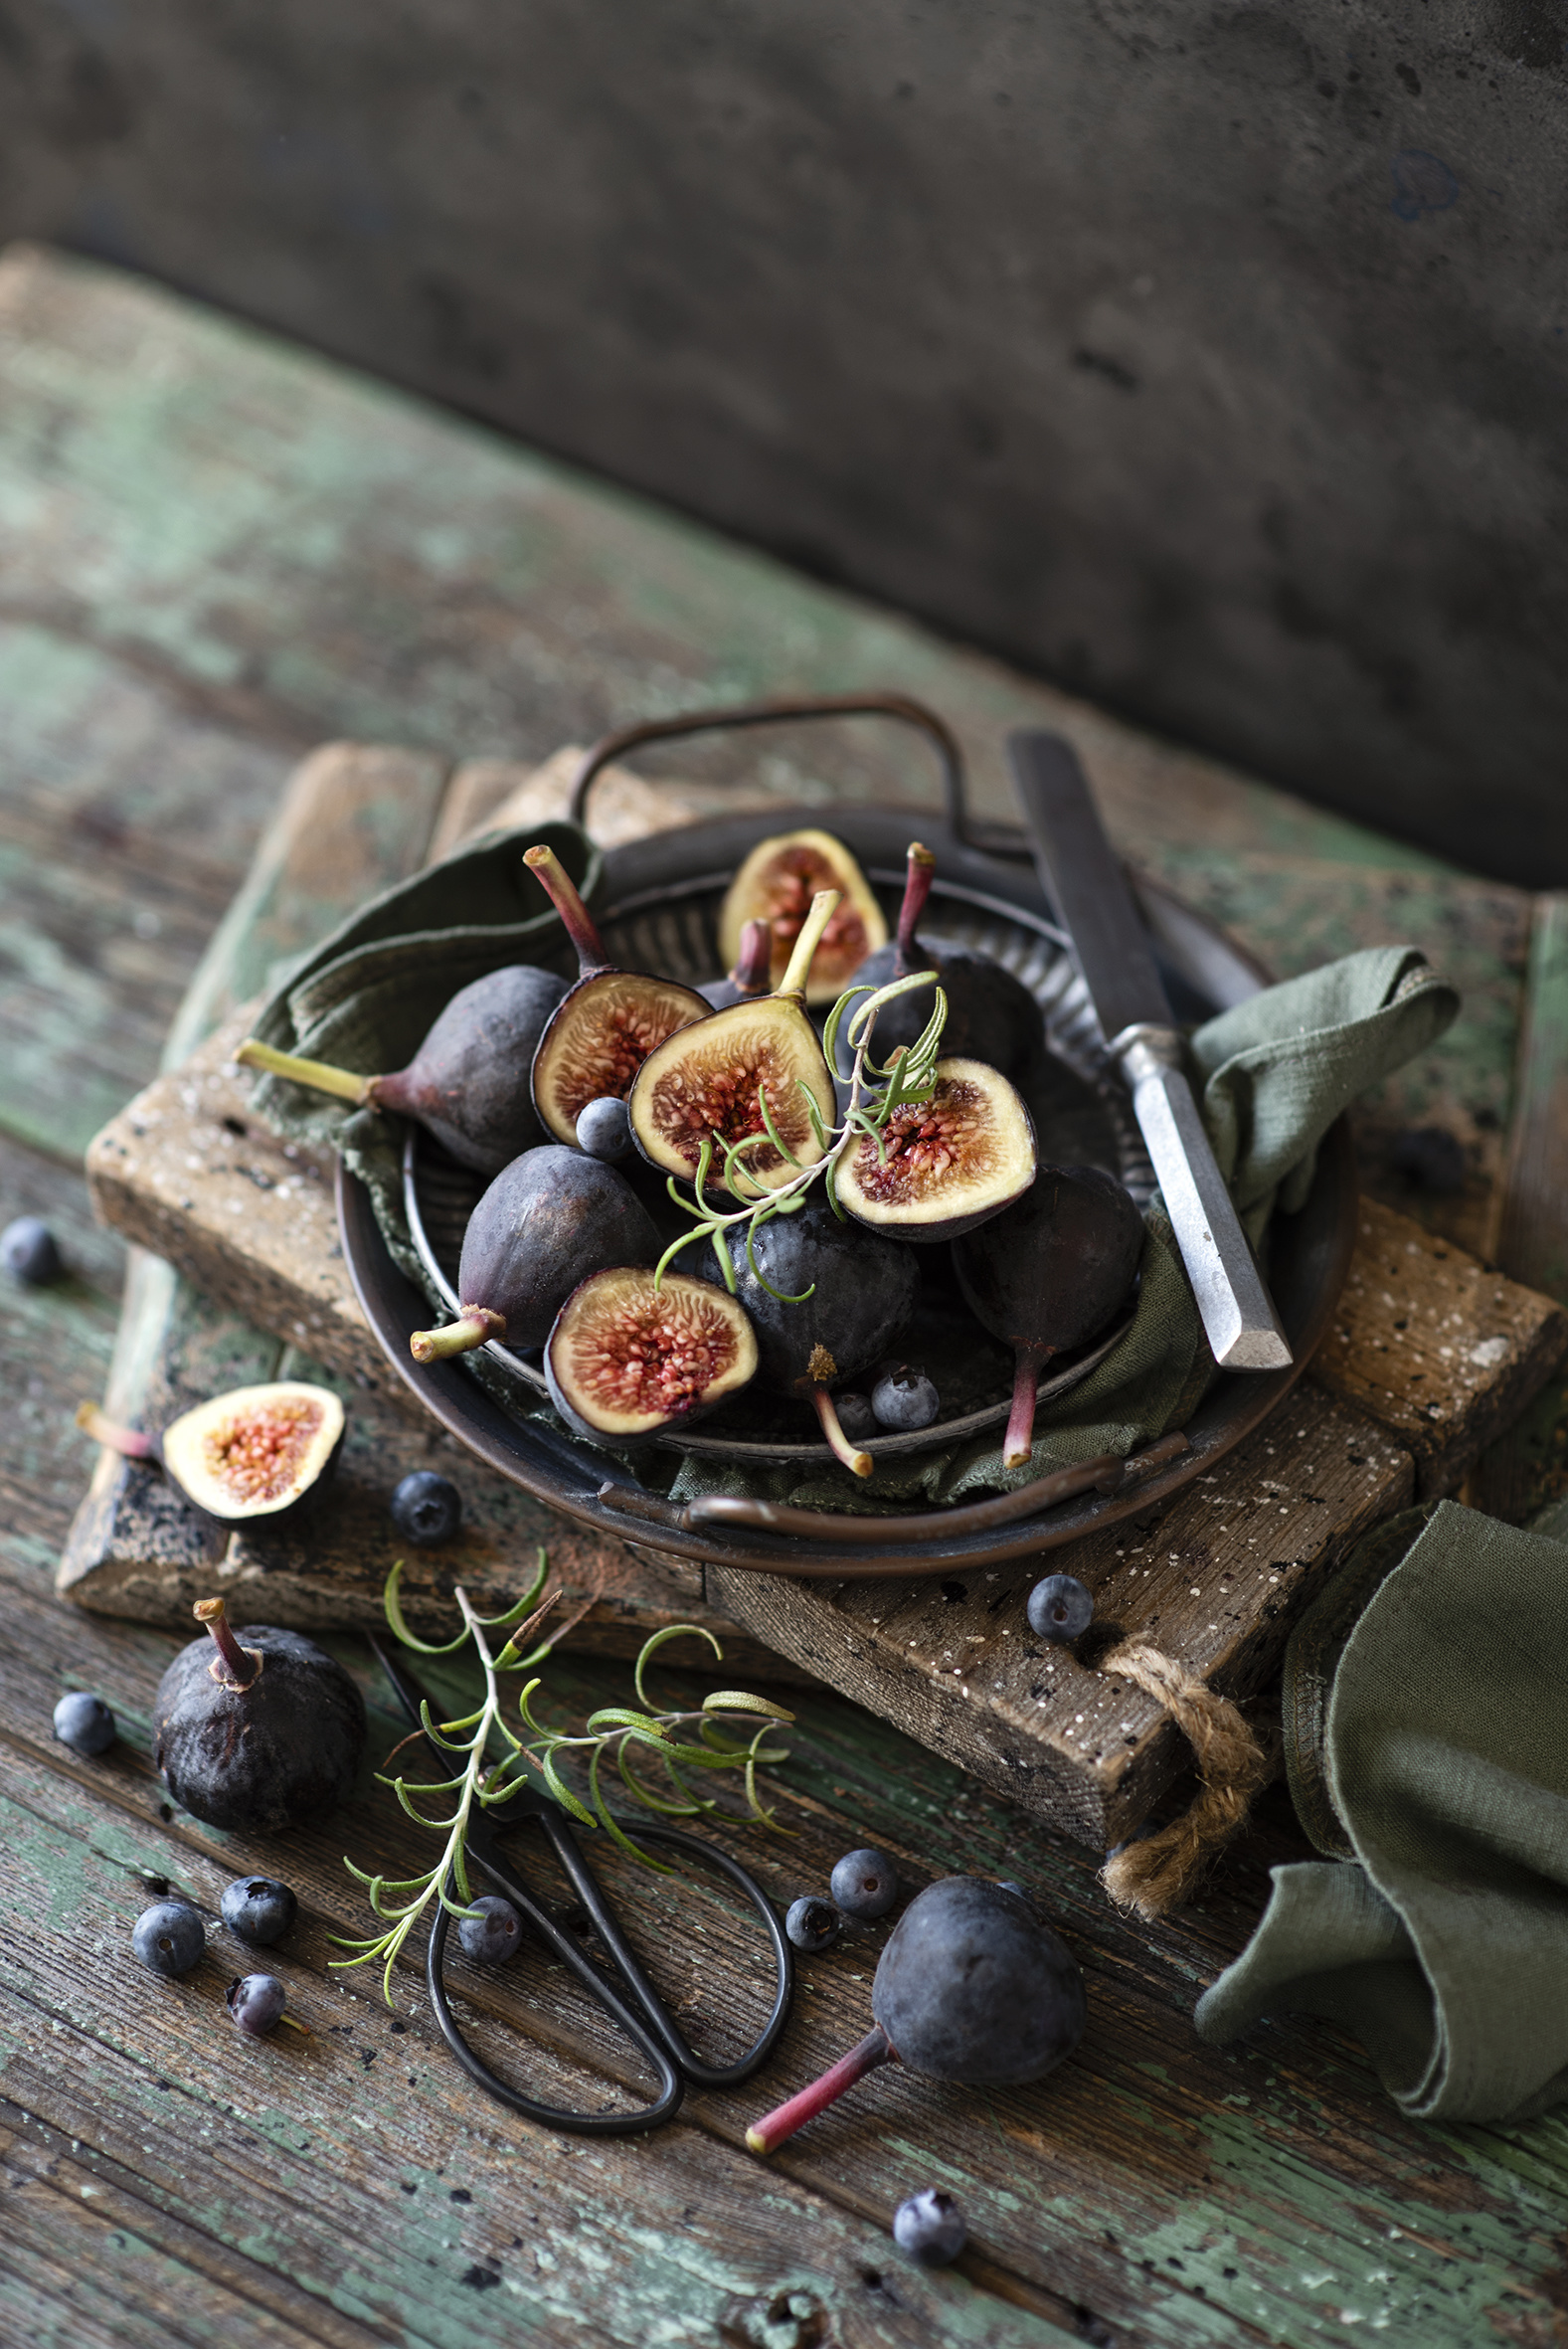 Images Knife ficus carica Blueberries Food Wood planks  for Mobile phone figs Common fig boards